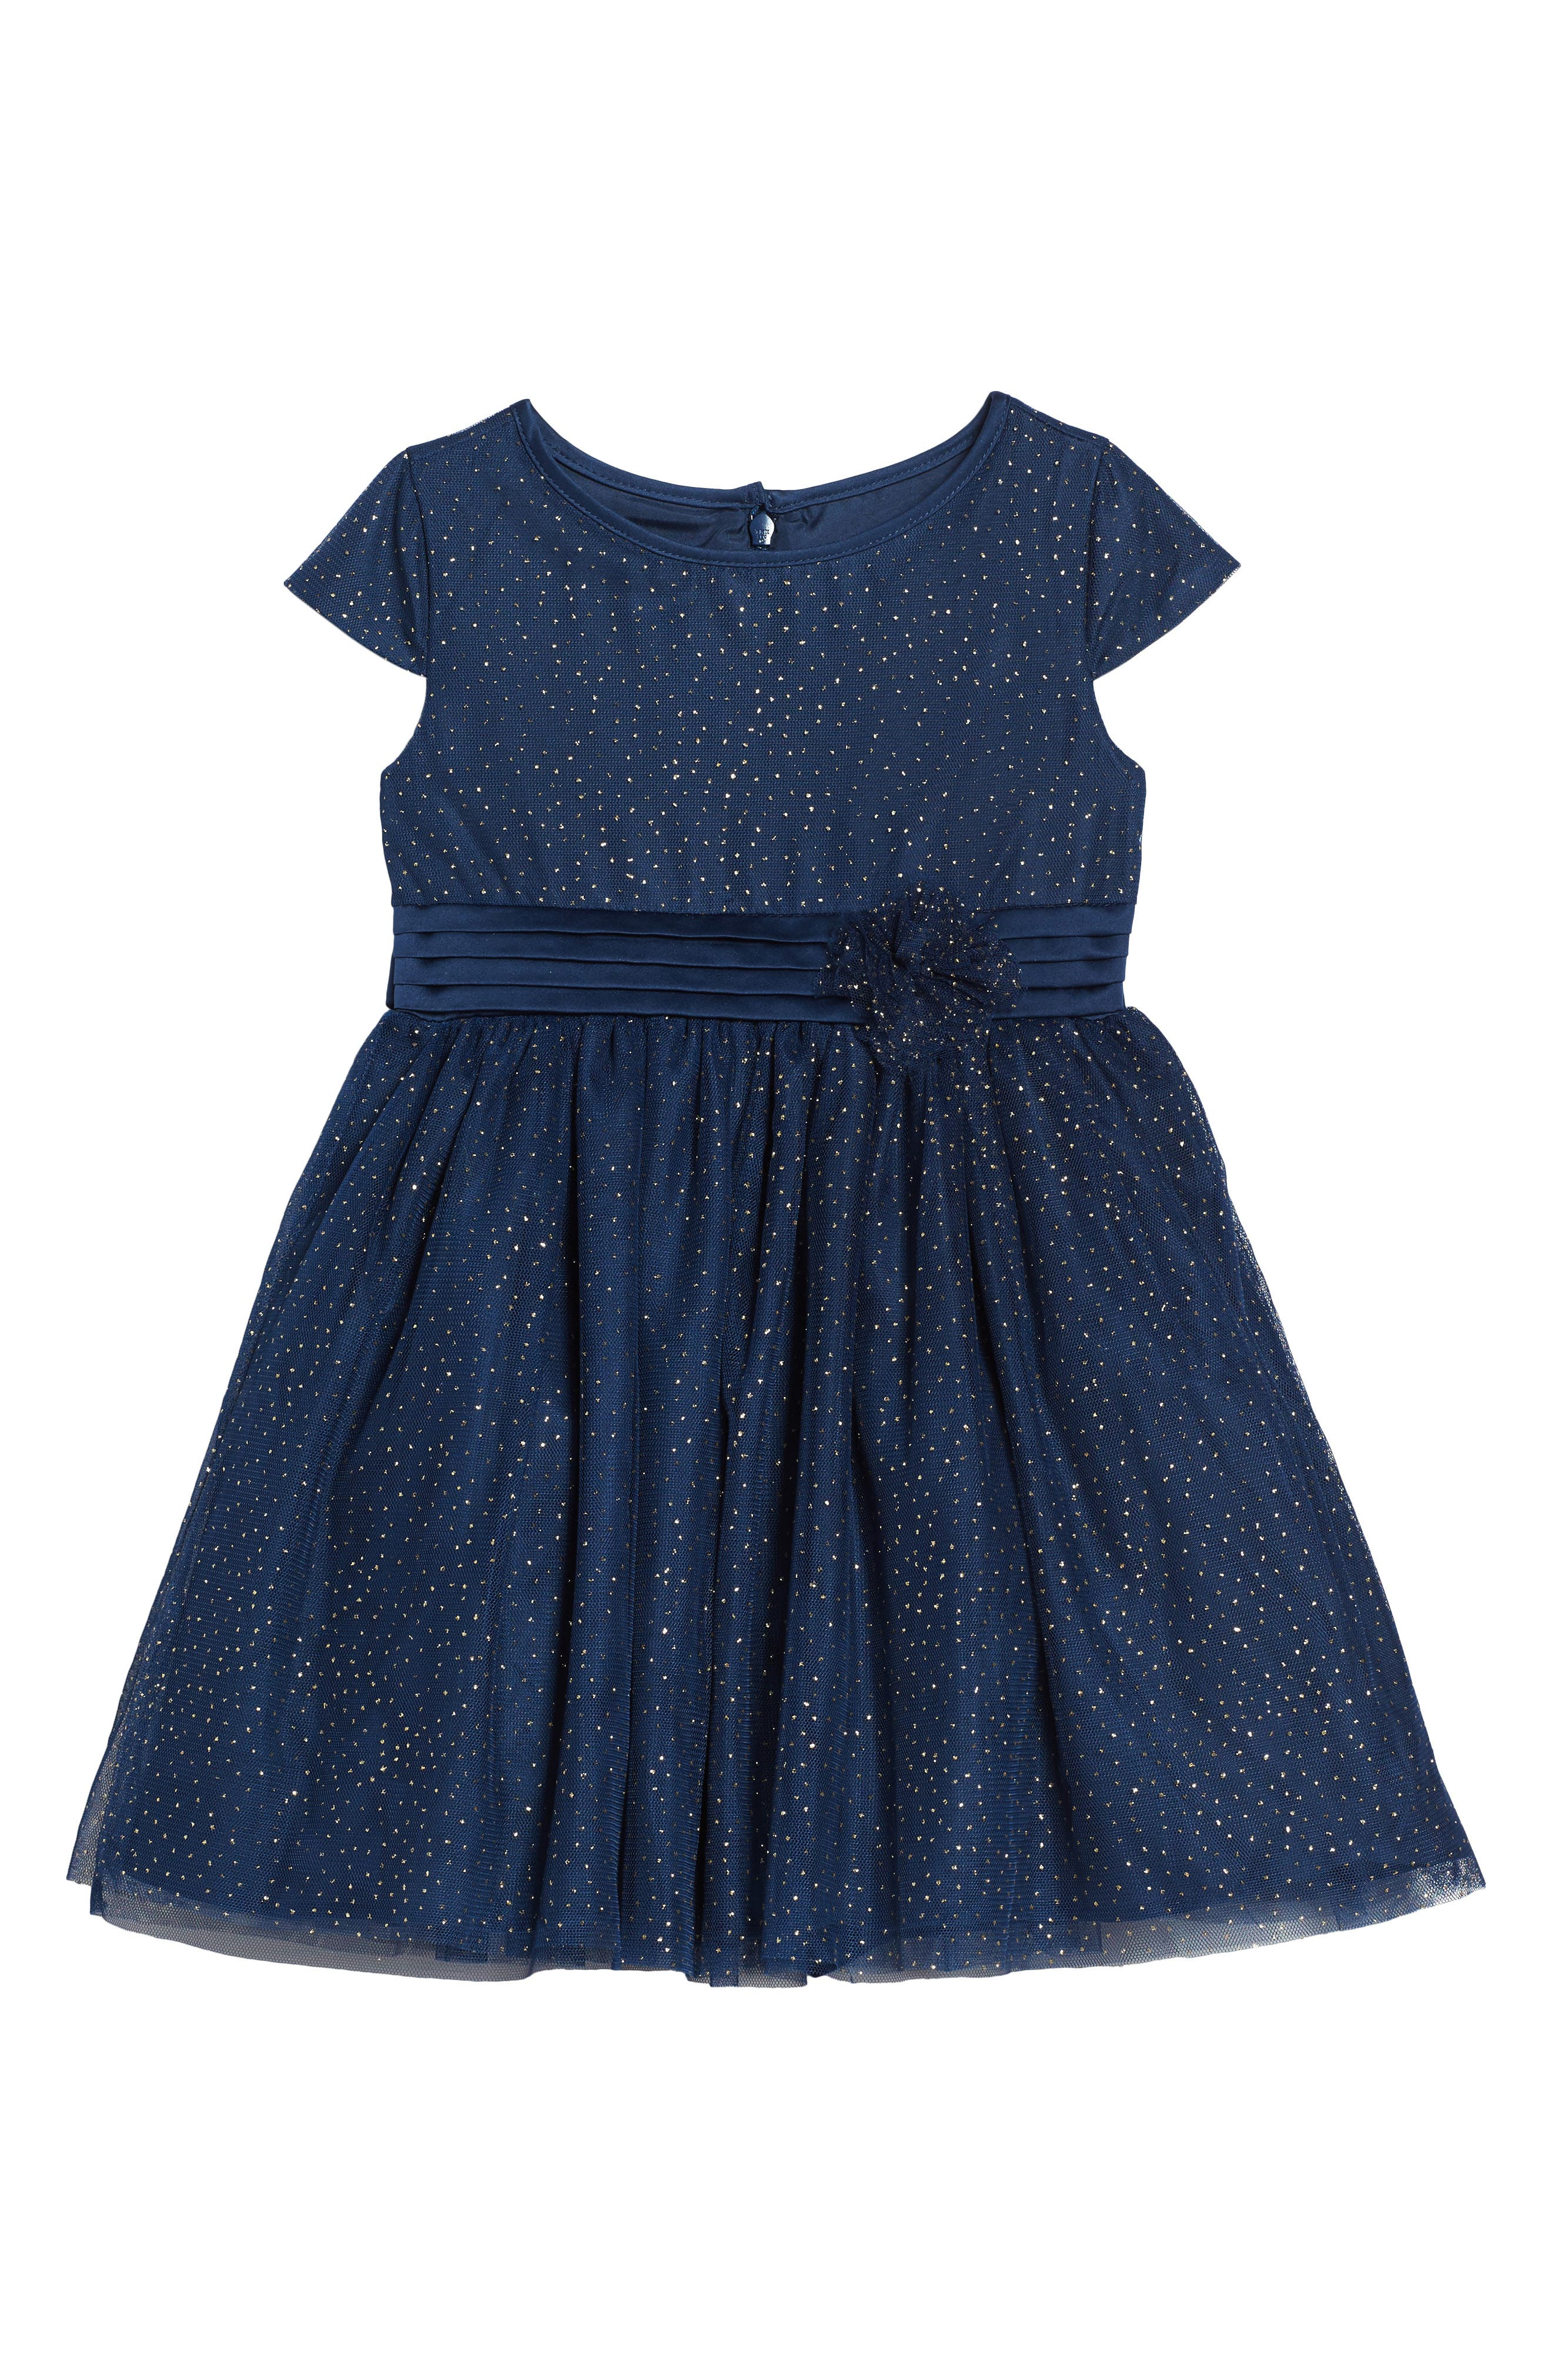 Little Angels Illusion Mesh Party Dress (Toddler Girls & Little Girls)